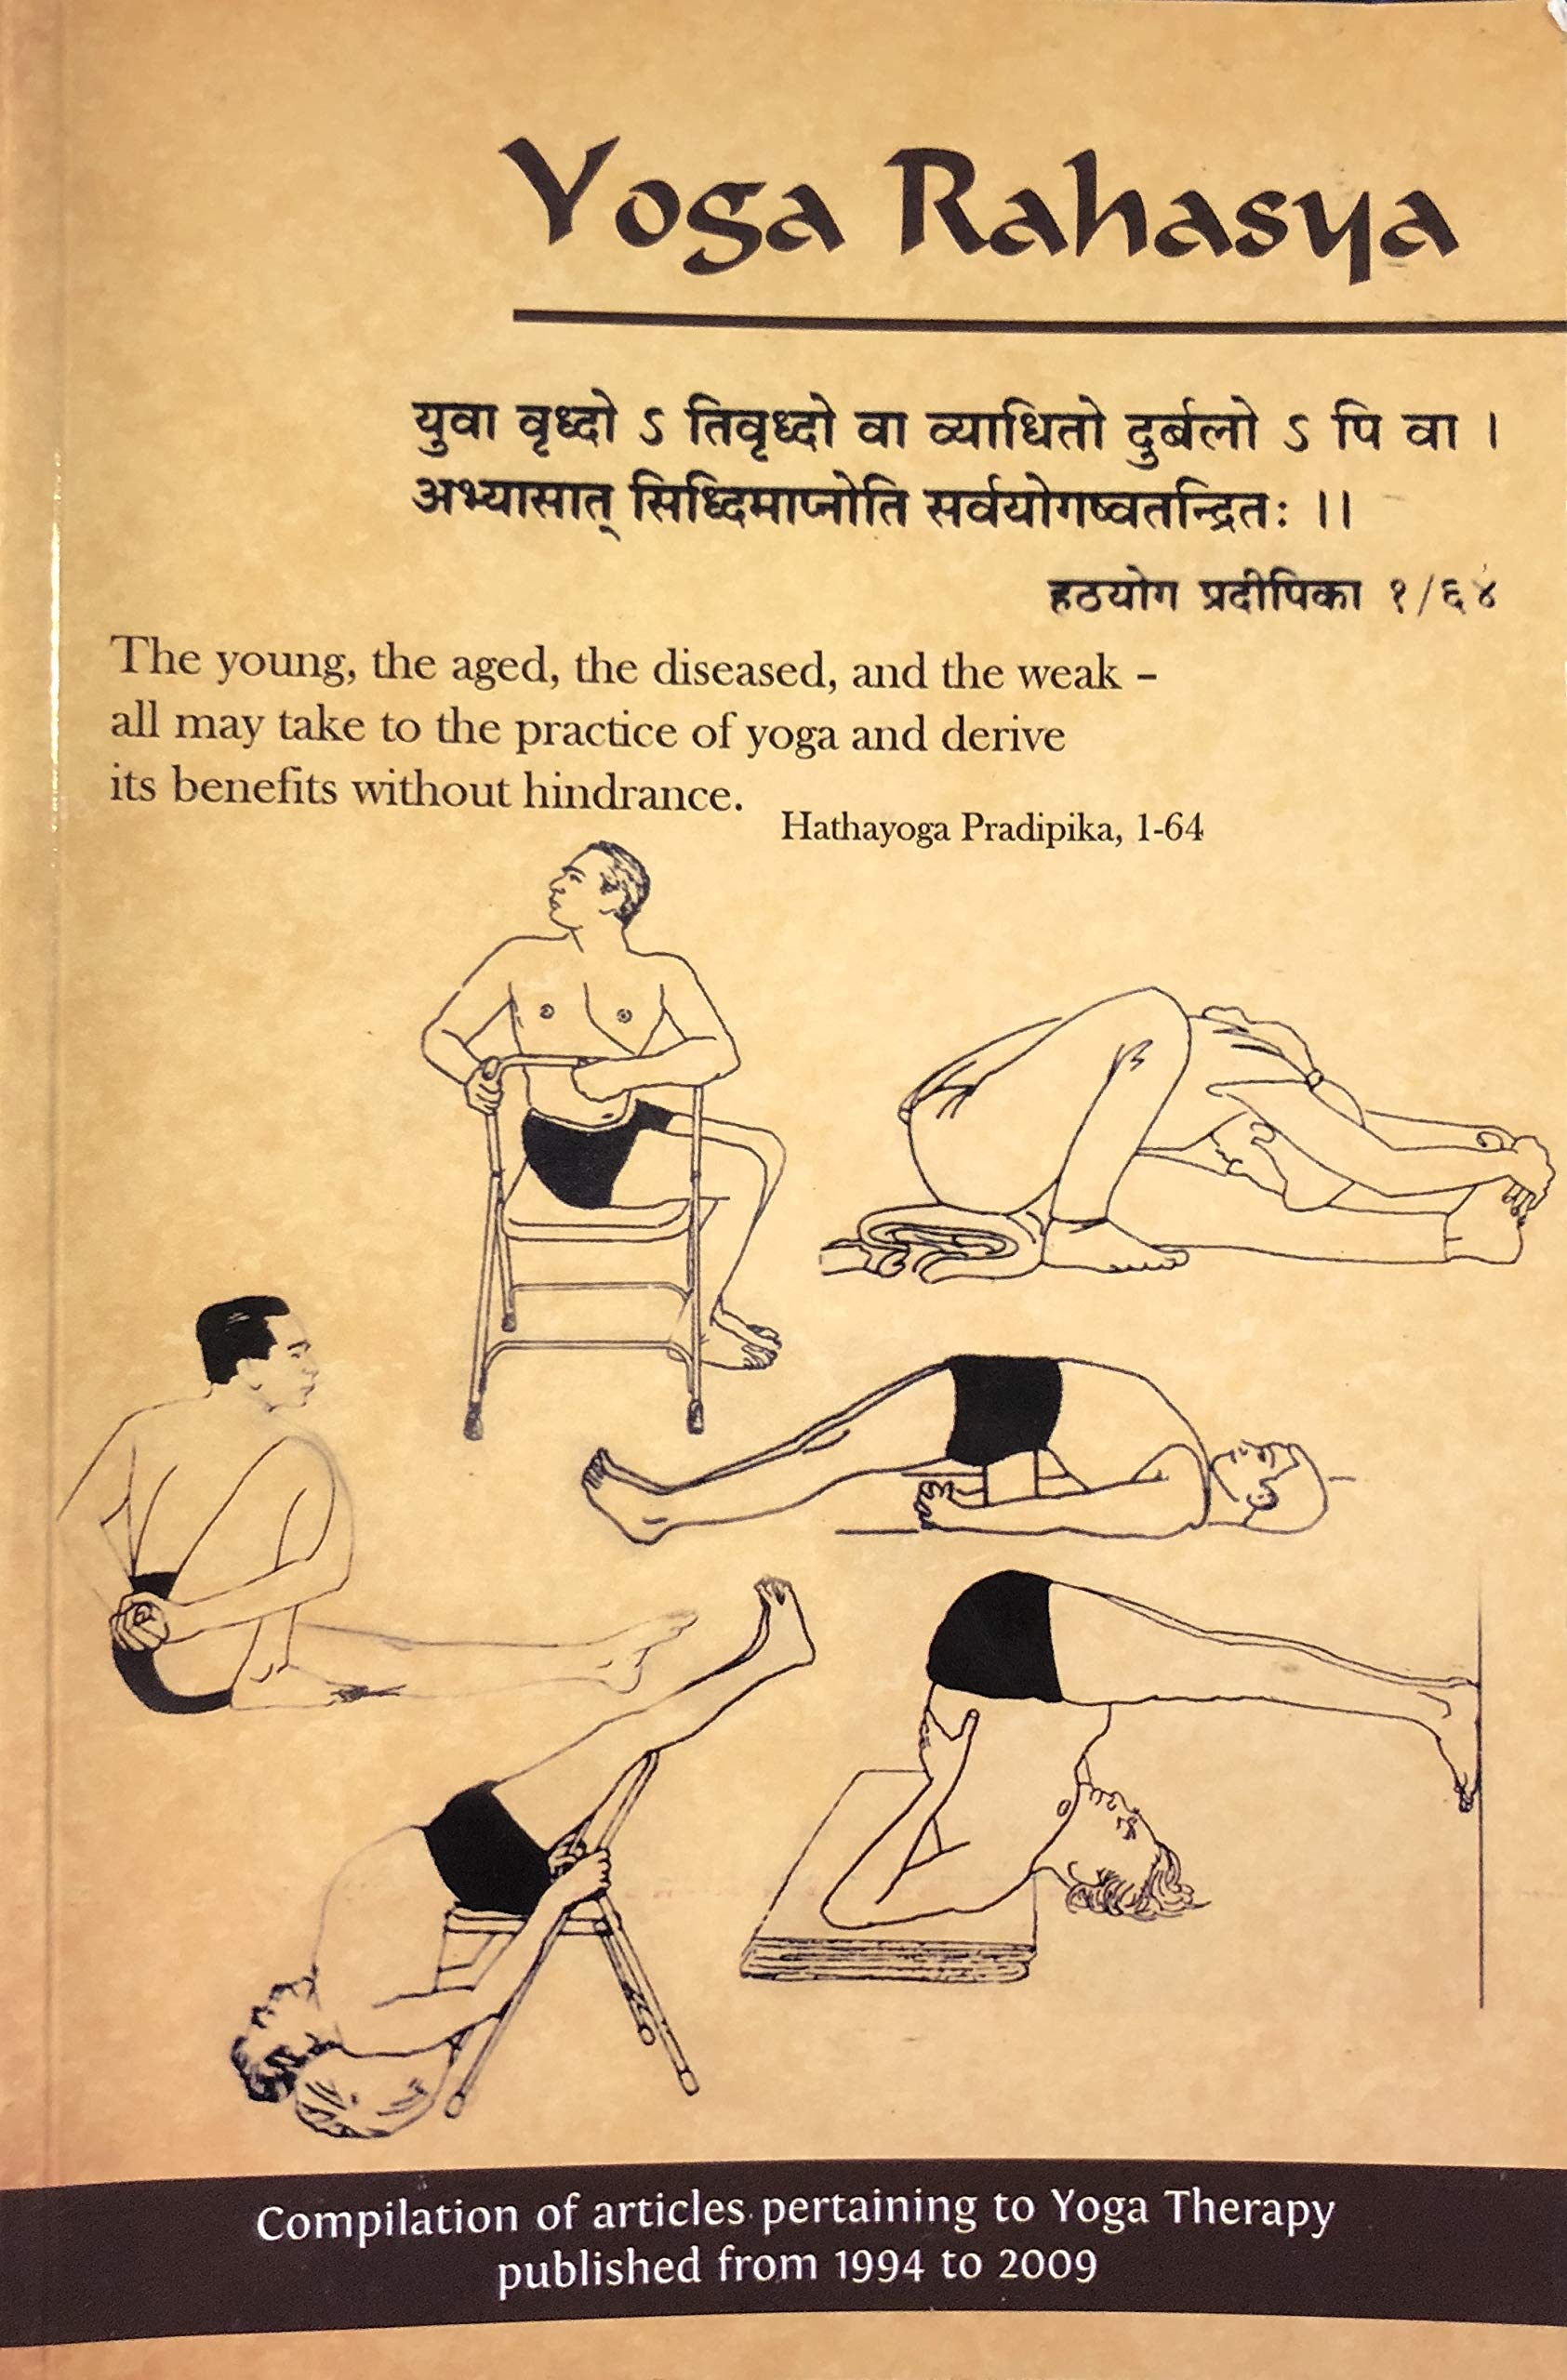 YOGA RAHASYA - Therapy Issue: A compilation of articles ...